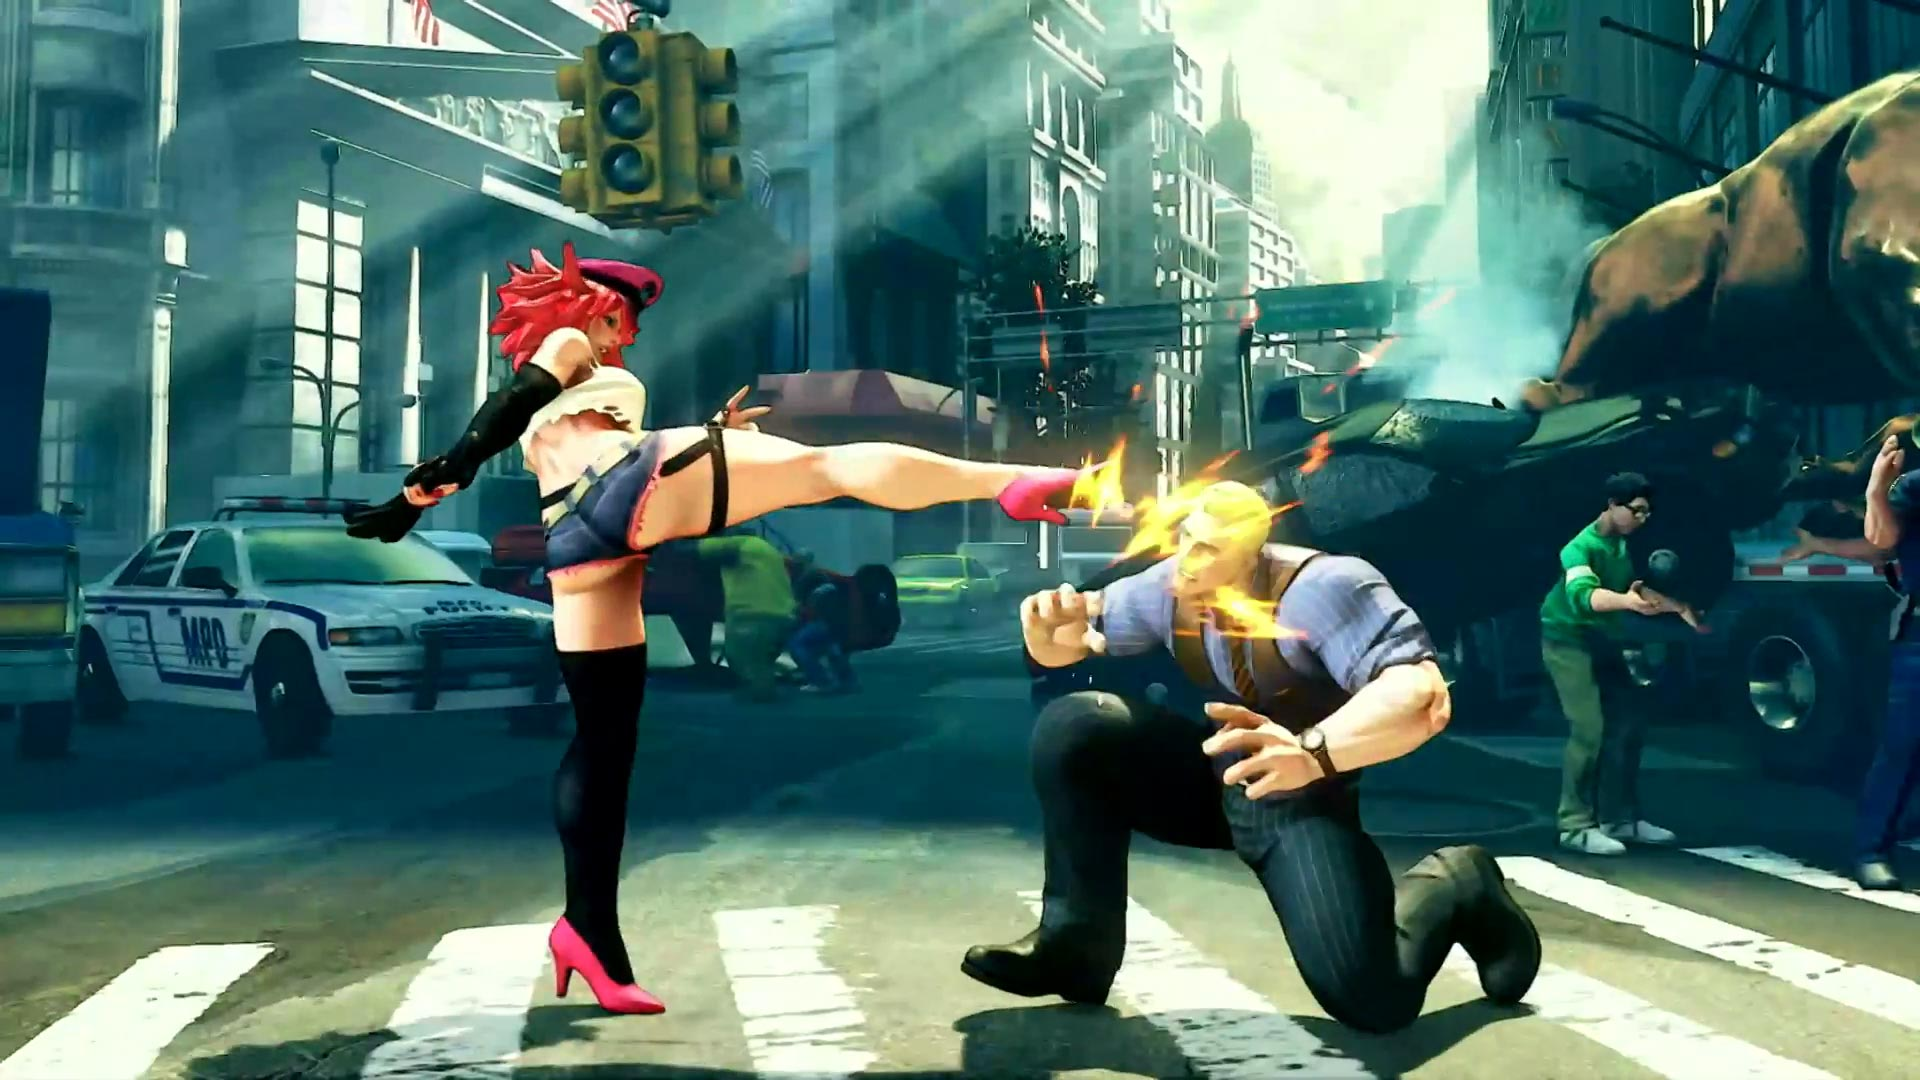 Street Fighter 5 leaked gallery of E. Honda, Lucia and Poison 11 out of 35 image gallery